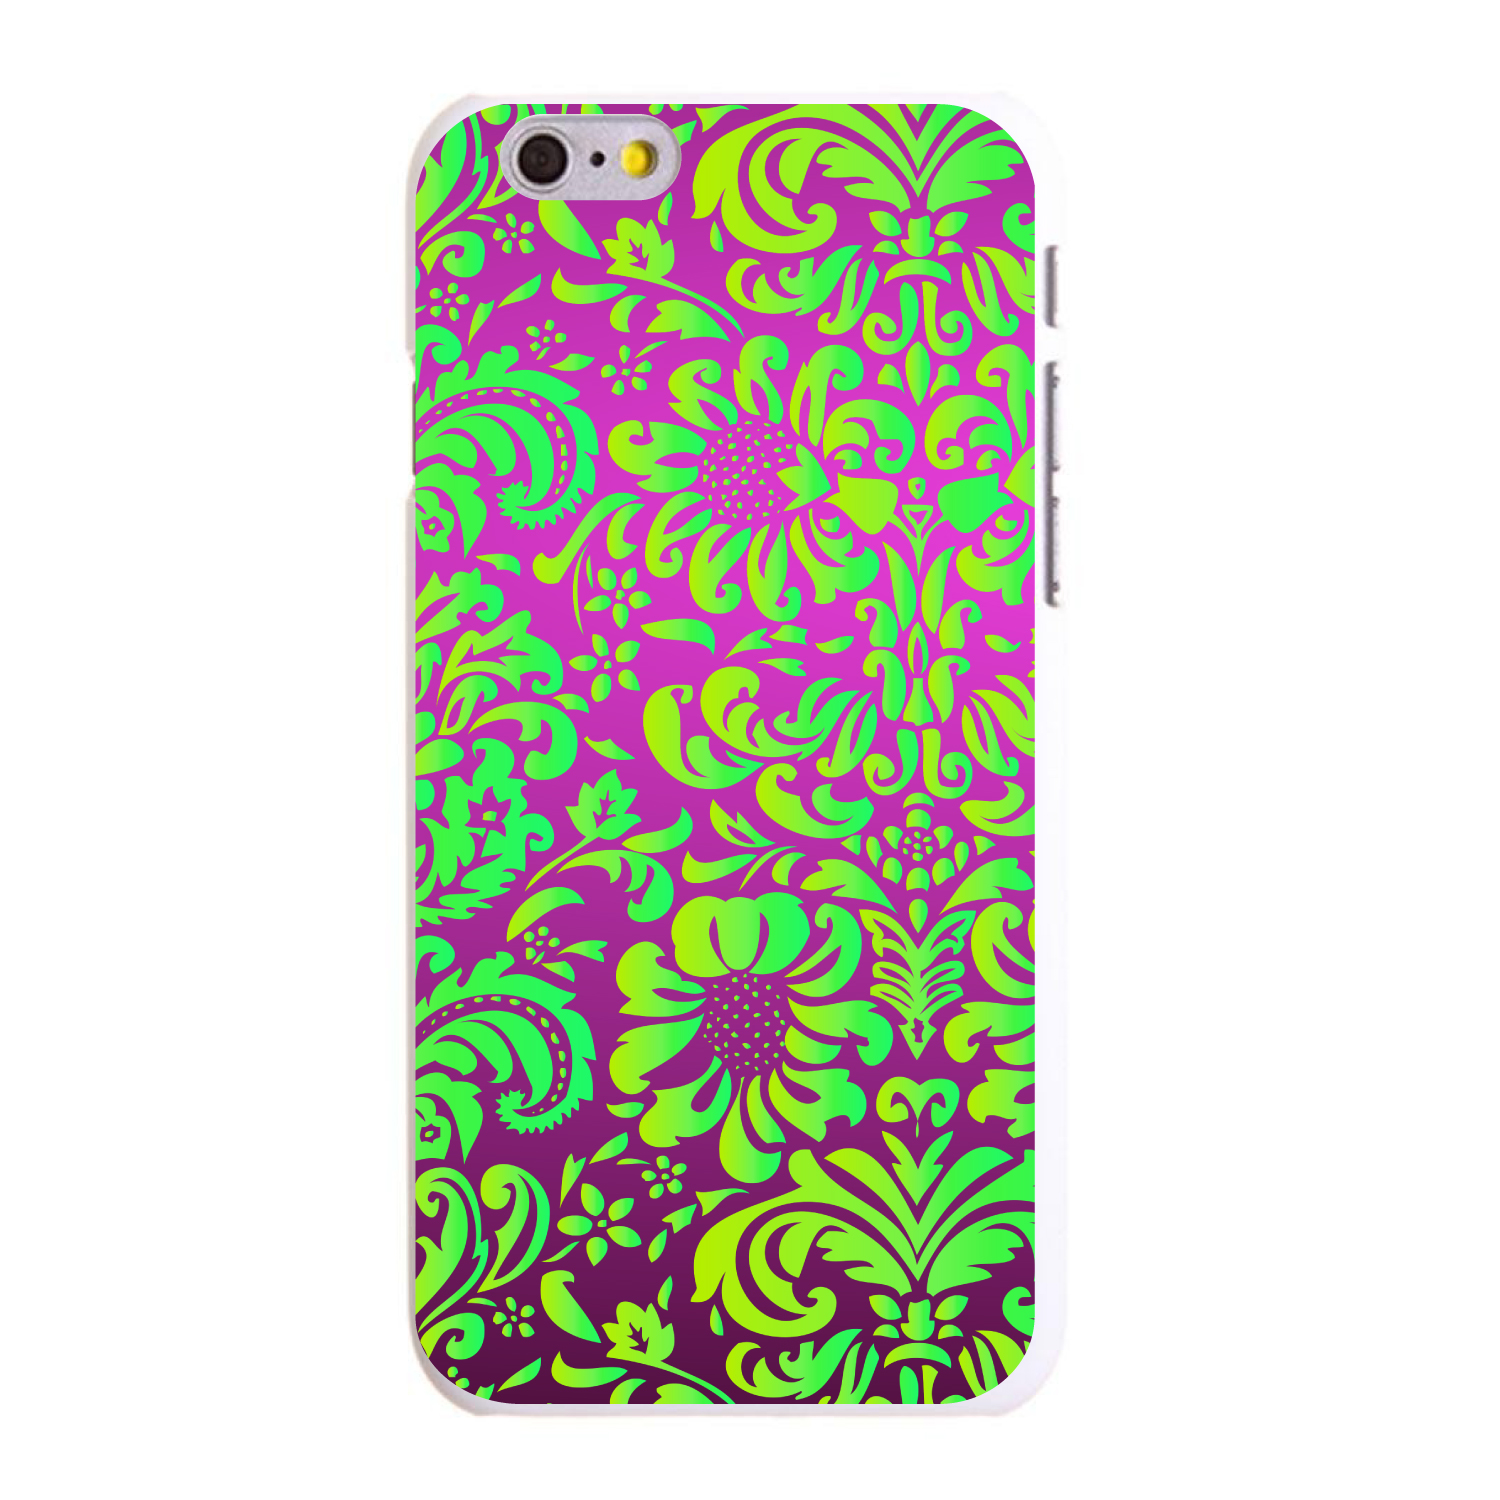 """CUSTOM White Hard Plastic Snap-On Case for Apple iPhone 6 / 6S (4.7"""" Screen) - Purple Green Floral Pattern"""